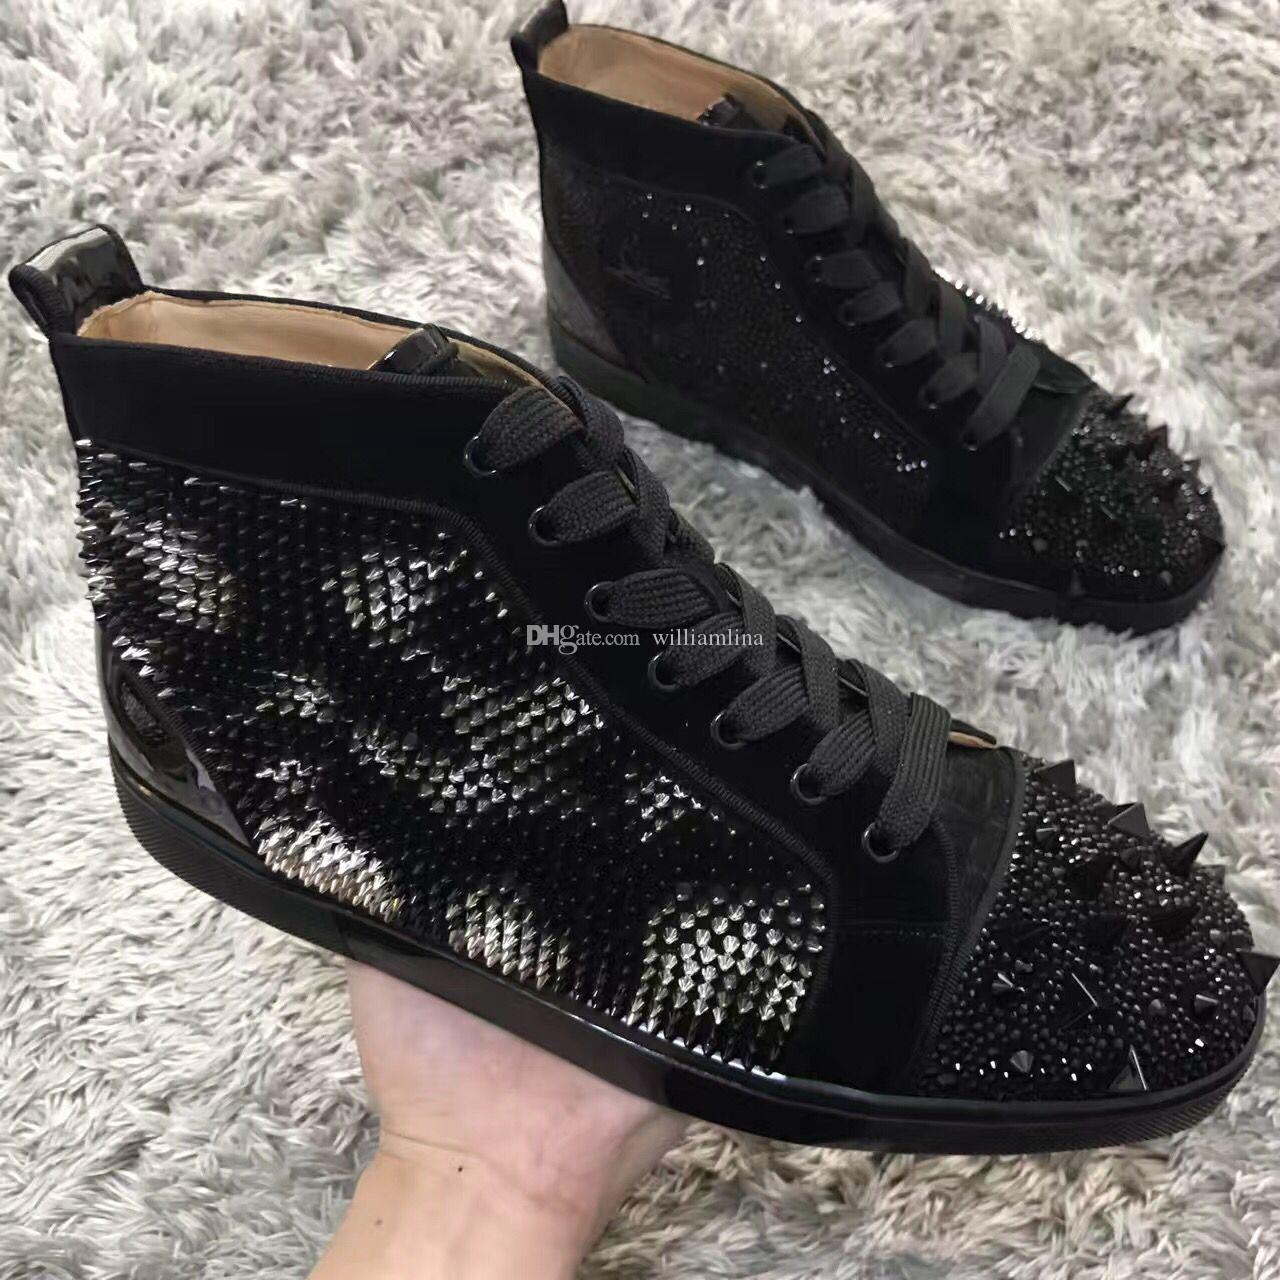 e1b8b300e41d Size 35 47 Gold,Sliver Spikes Sneakers Shoes Men,Women Leisure Flats Black  Diamond Red Bottom Strass Sneaker Shoes Party Dress Luxury Winter Shoes For  Sale ...